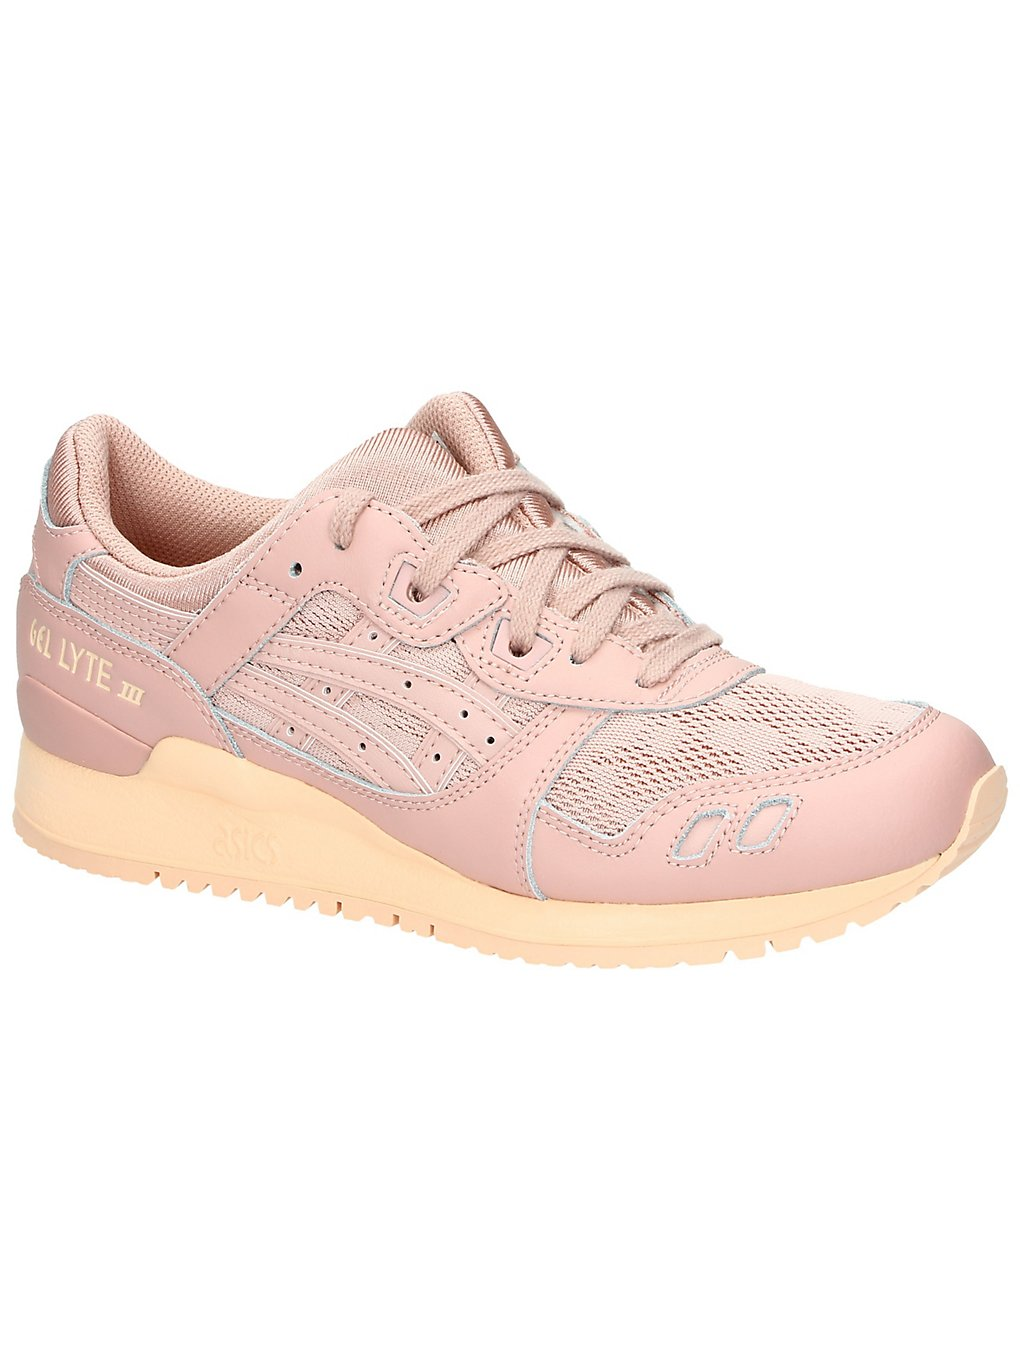 Image of Asics Gel-Lyte III Sneakers Women